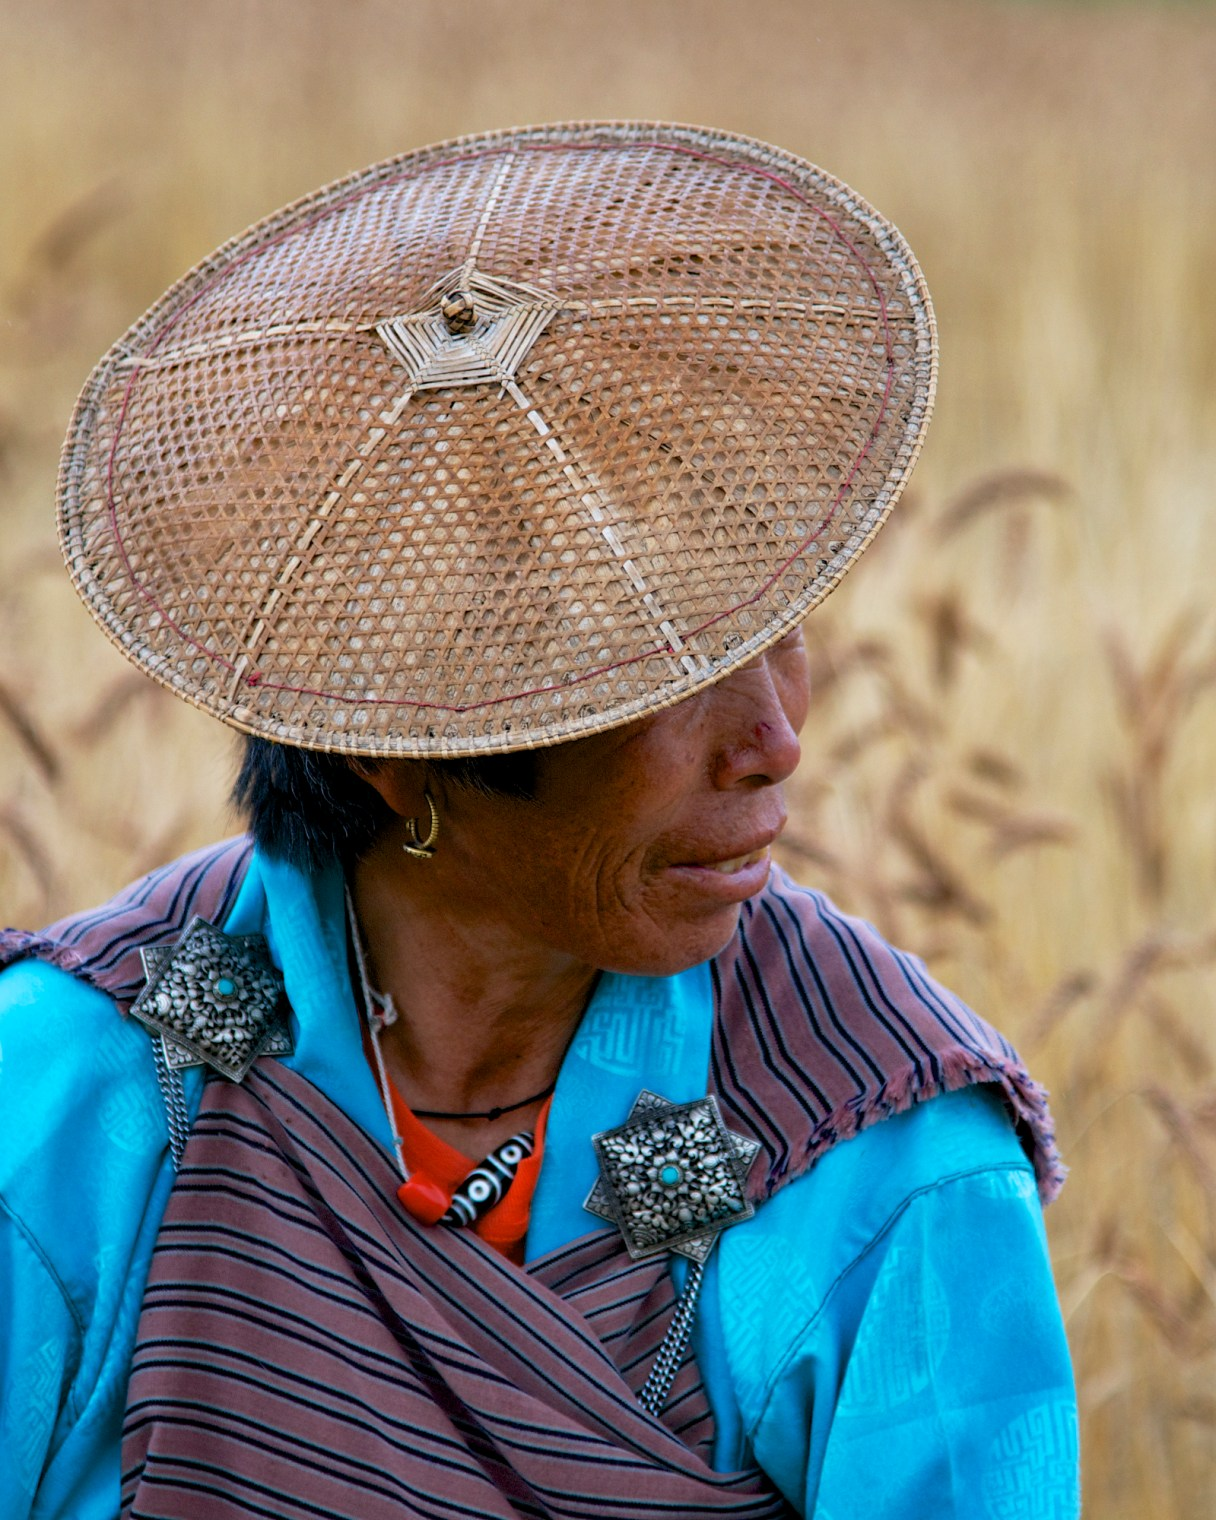 wheat-lady-in-profile-bumthang-bhutan-copyright-2013-ralph-velasco